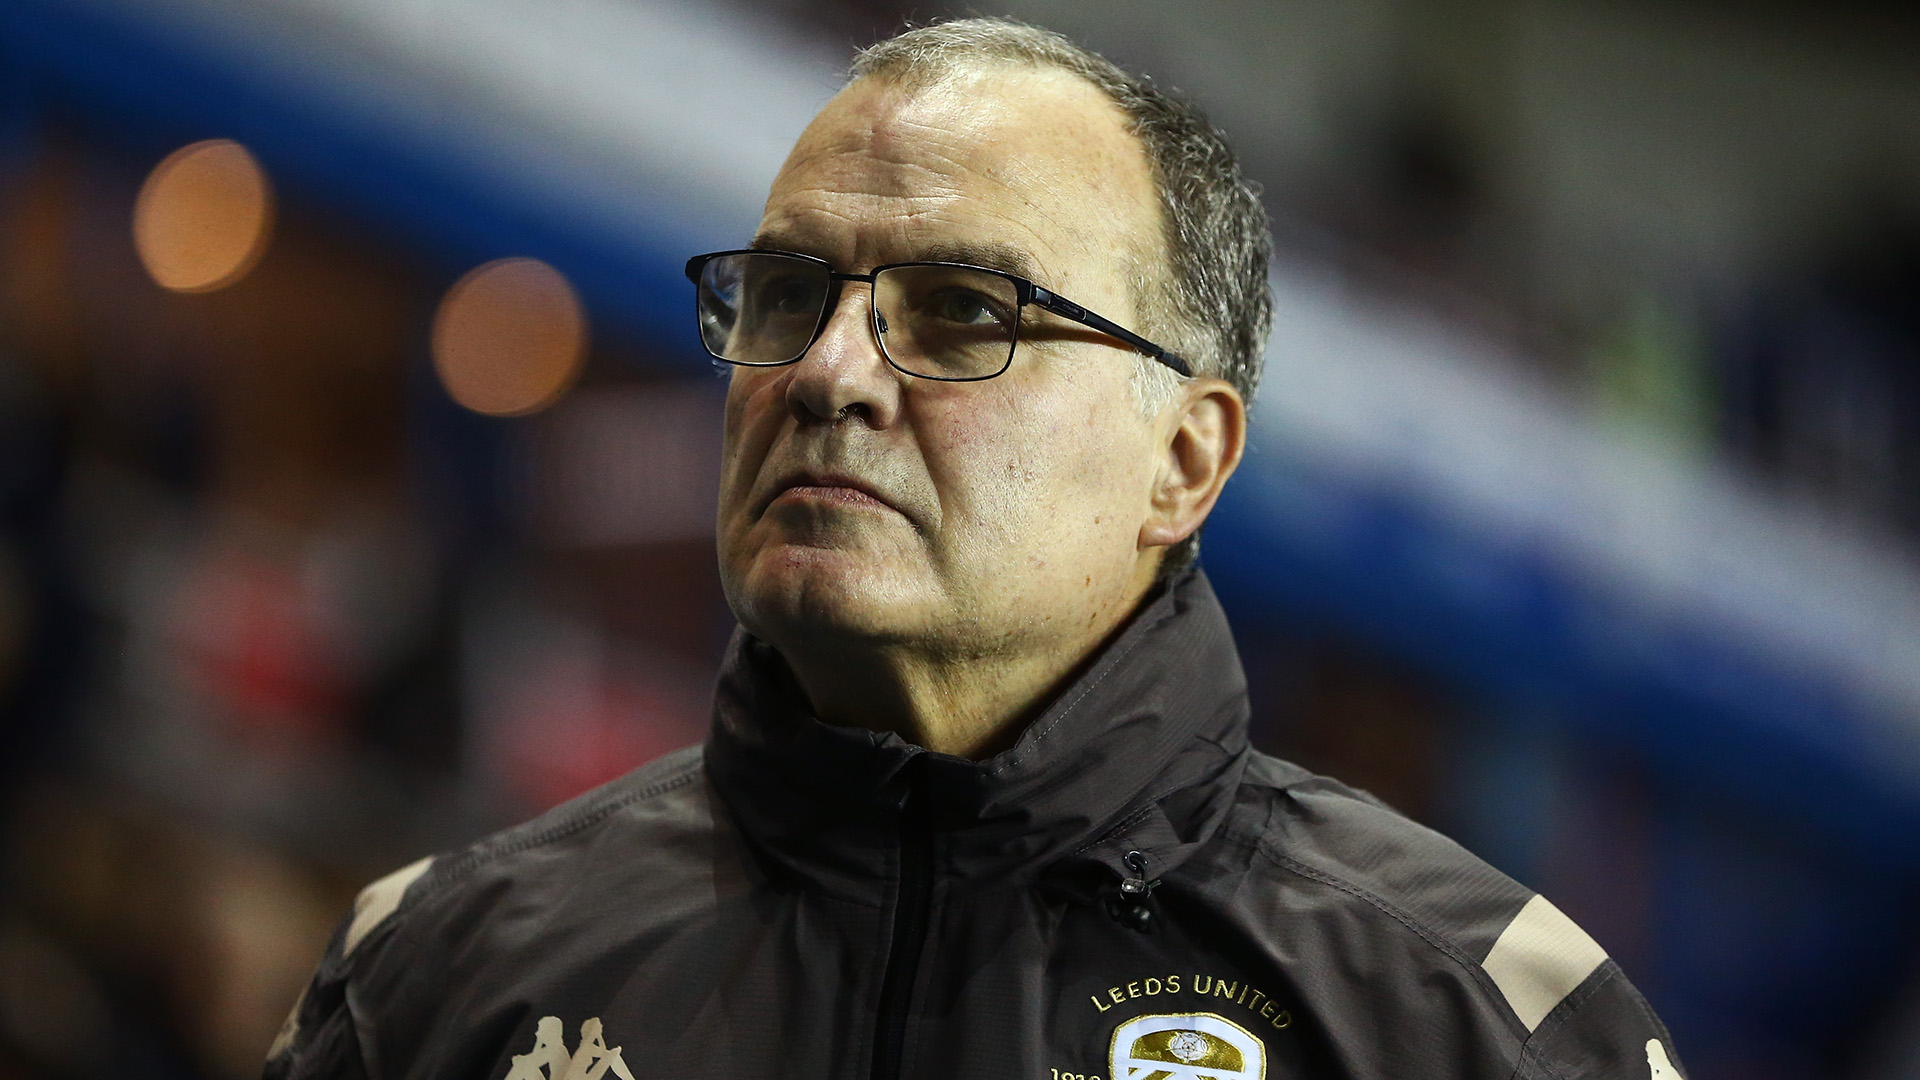 Defiant Bielsa insists Leeds won't abandon their style despite Man Utd thrashing